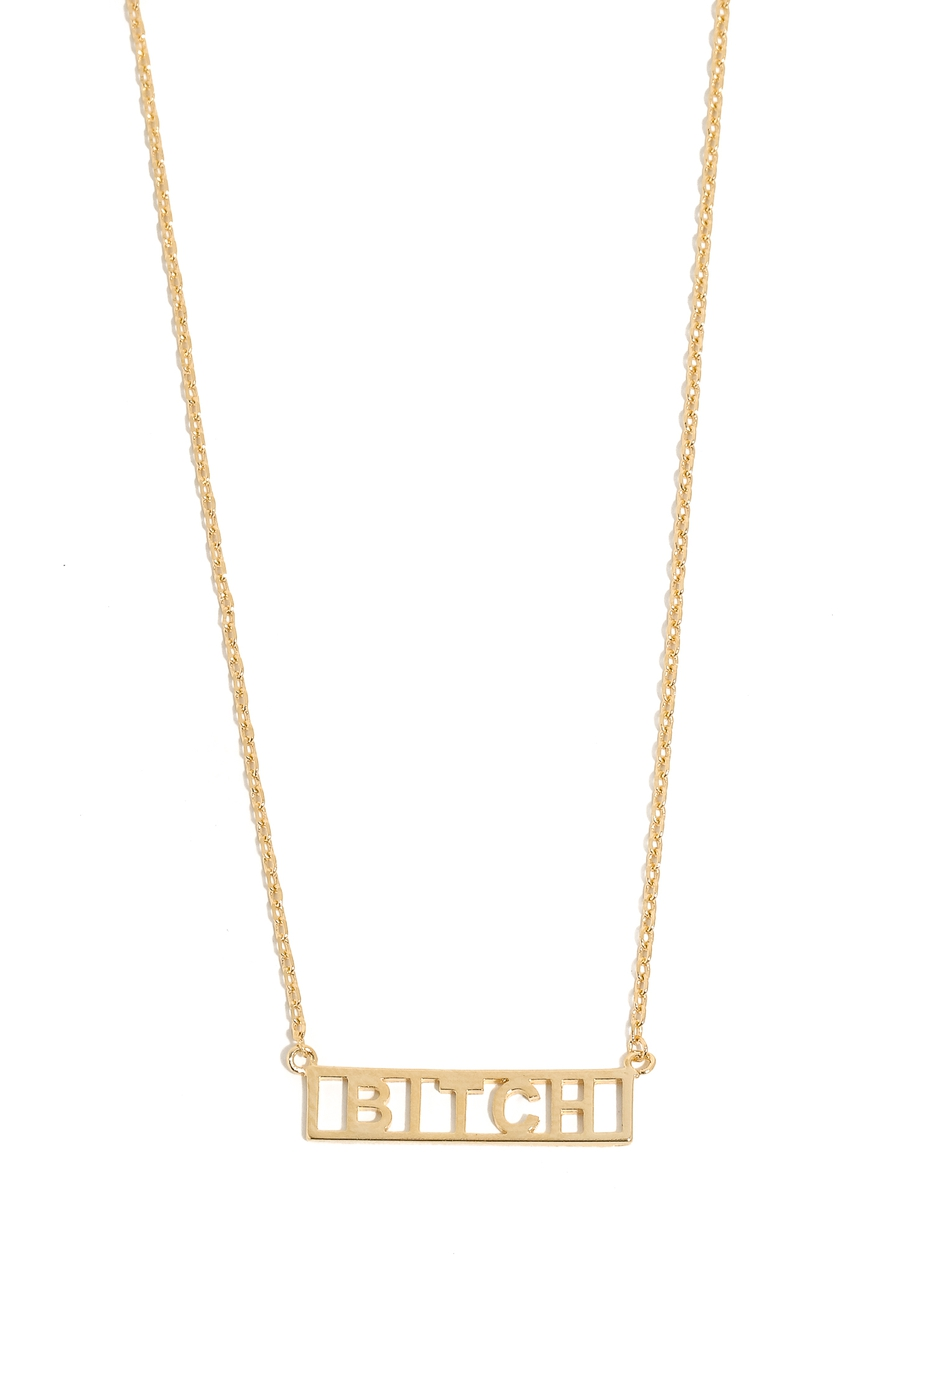 Bitch Box Text Pendant Necklace - orangeshine.com